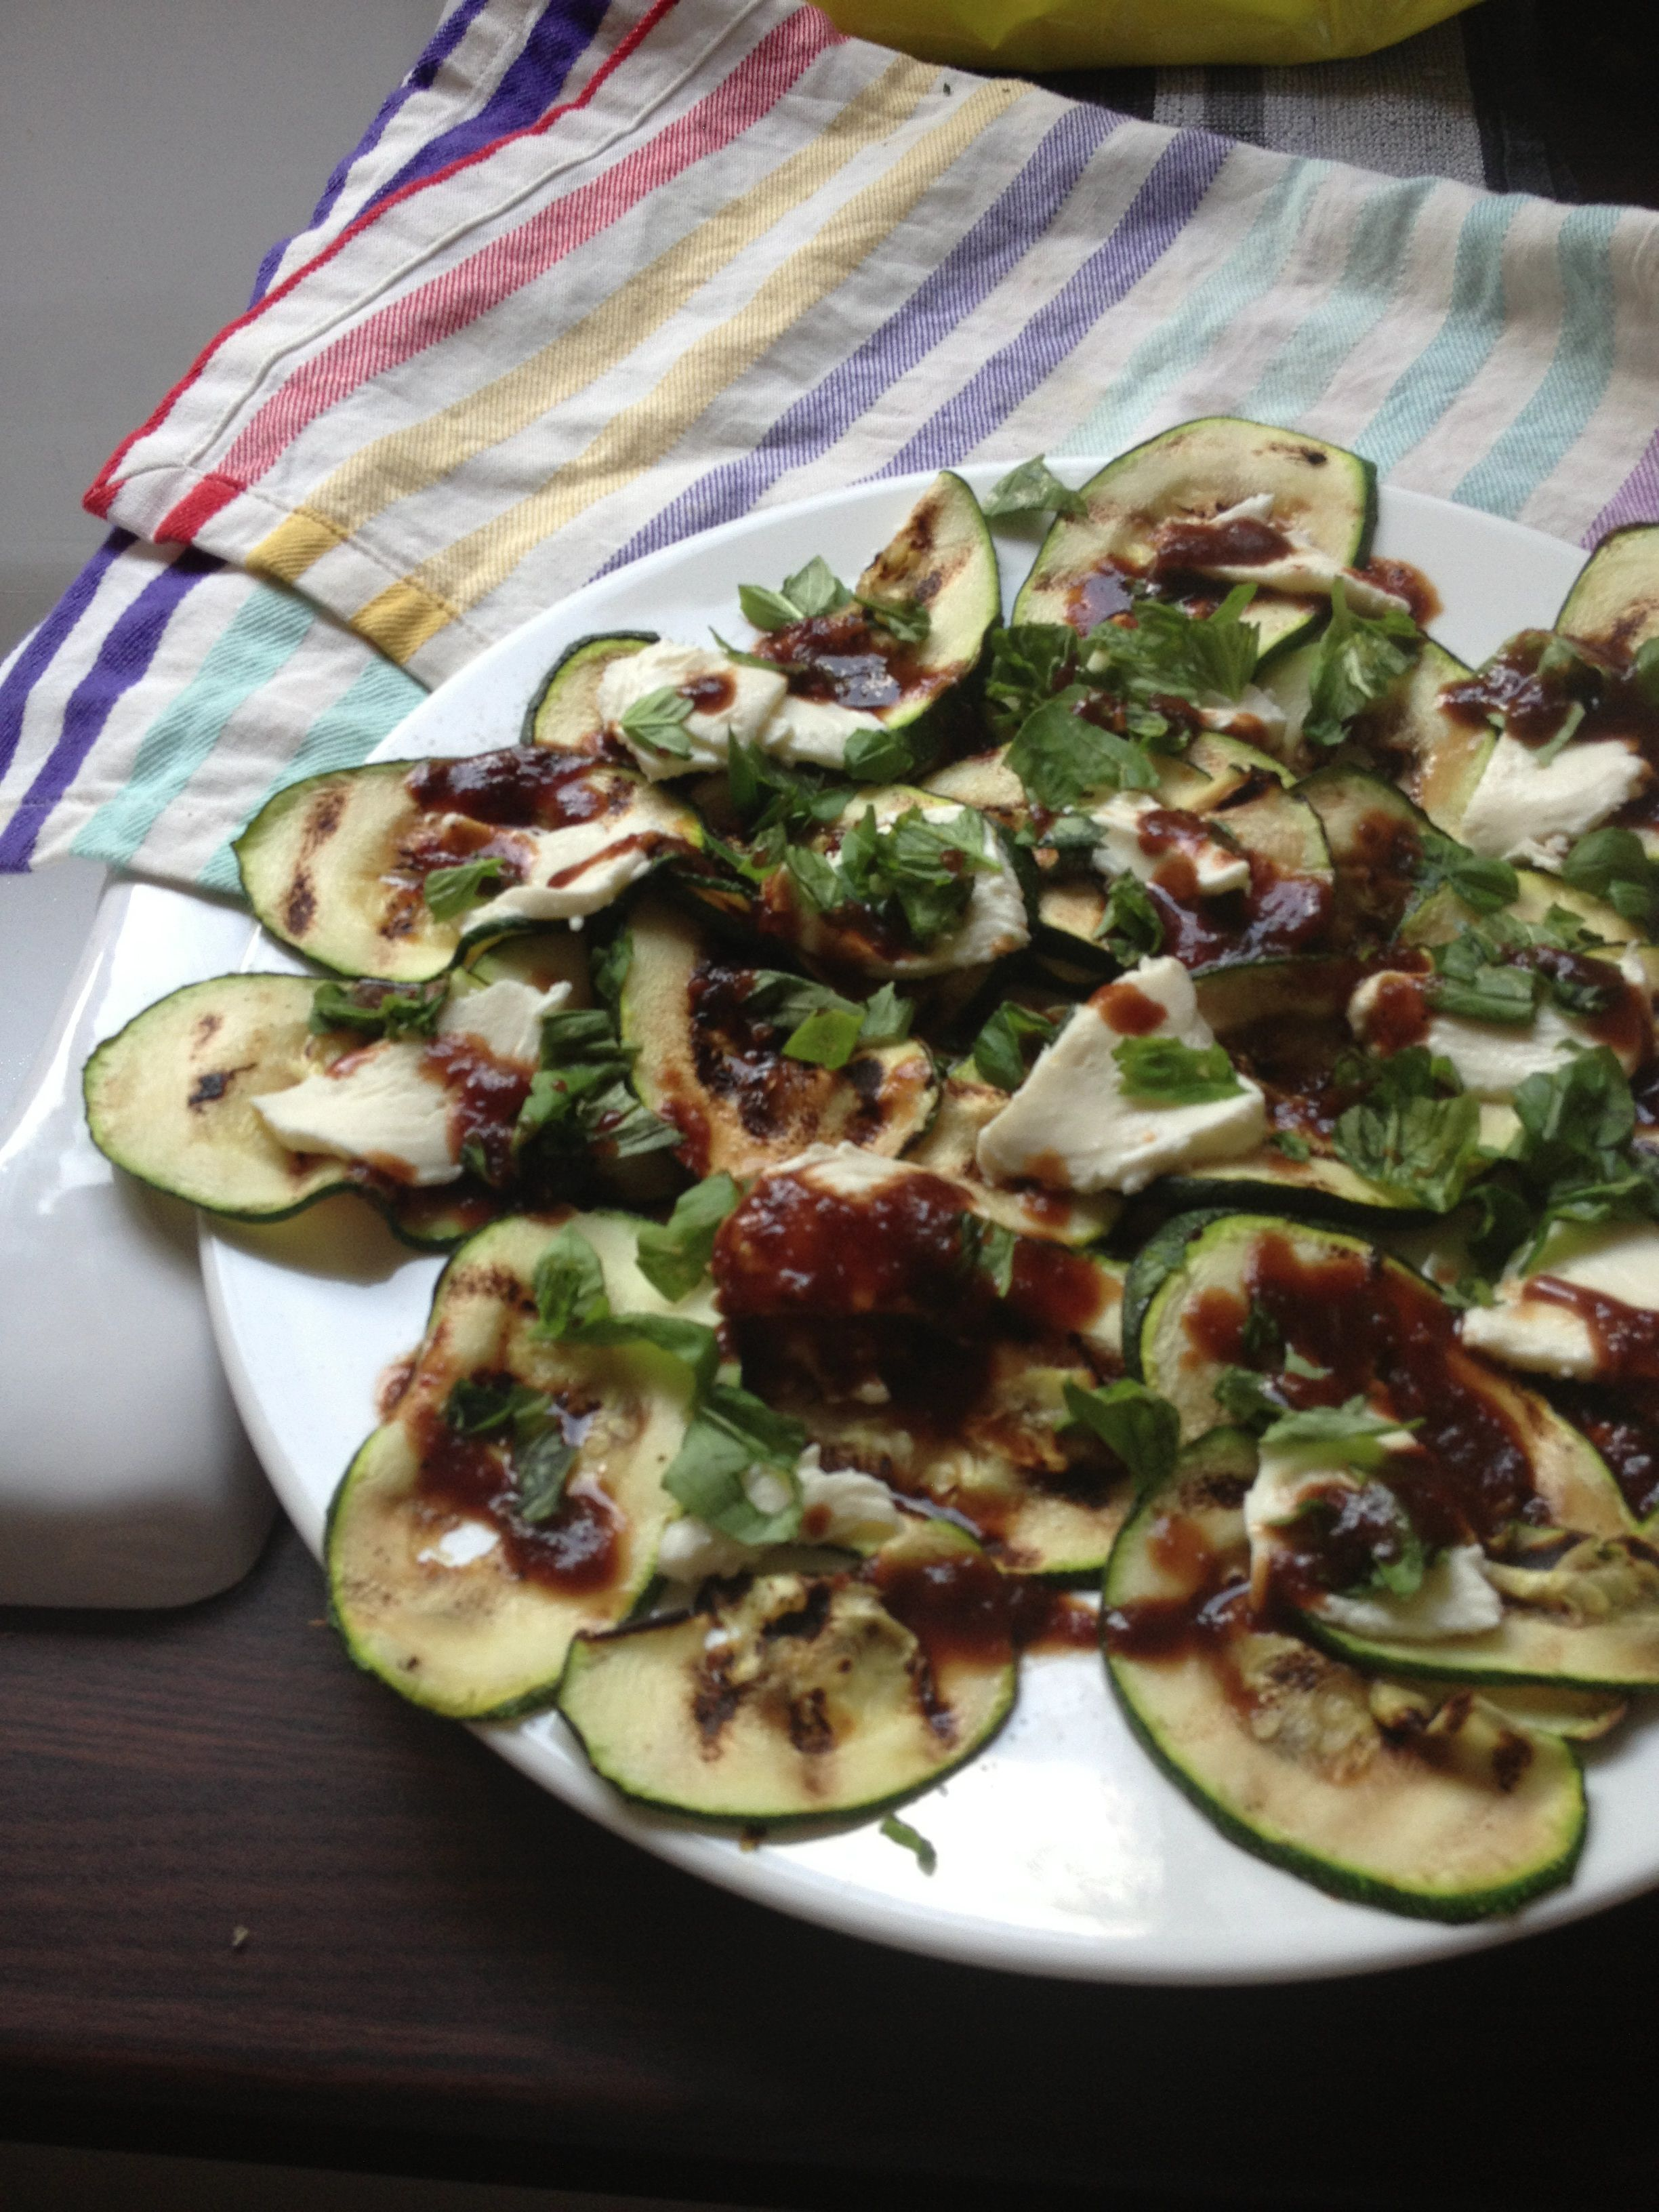 Griddle courgette and mozarella salad